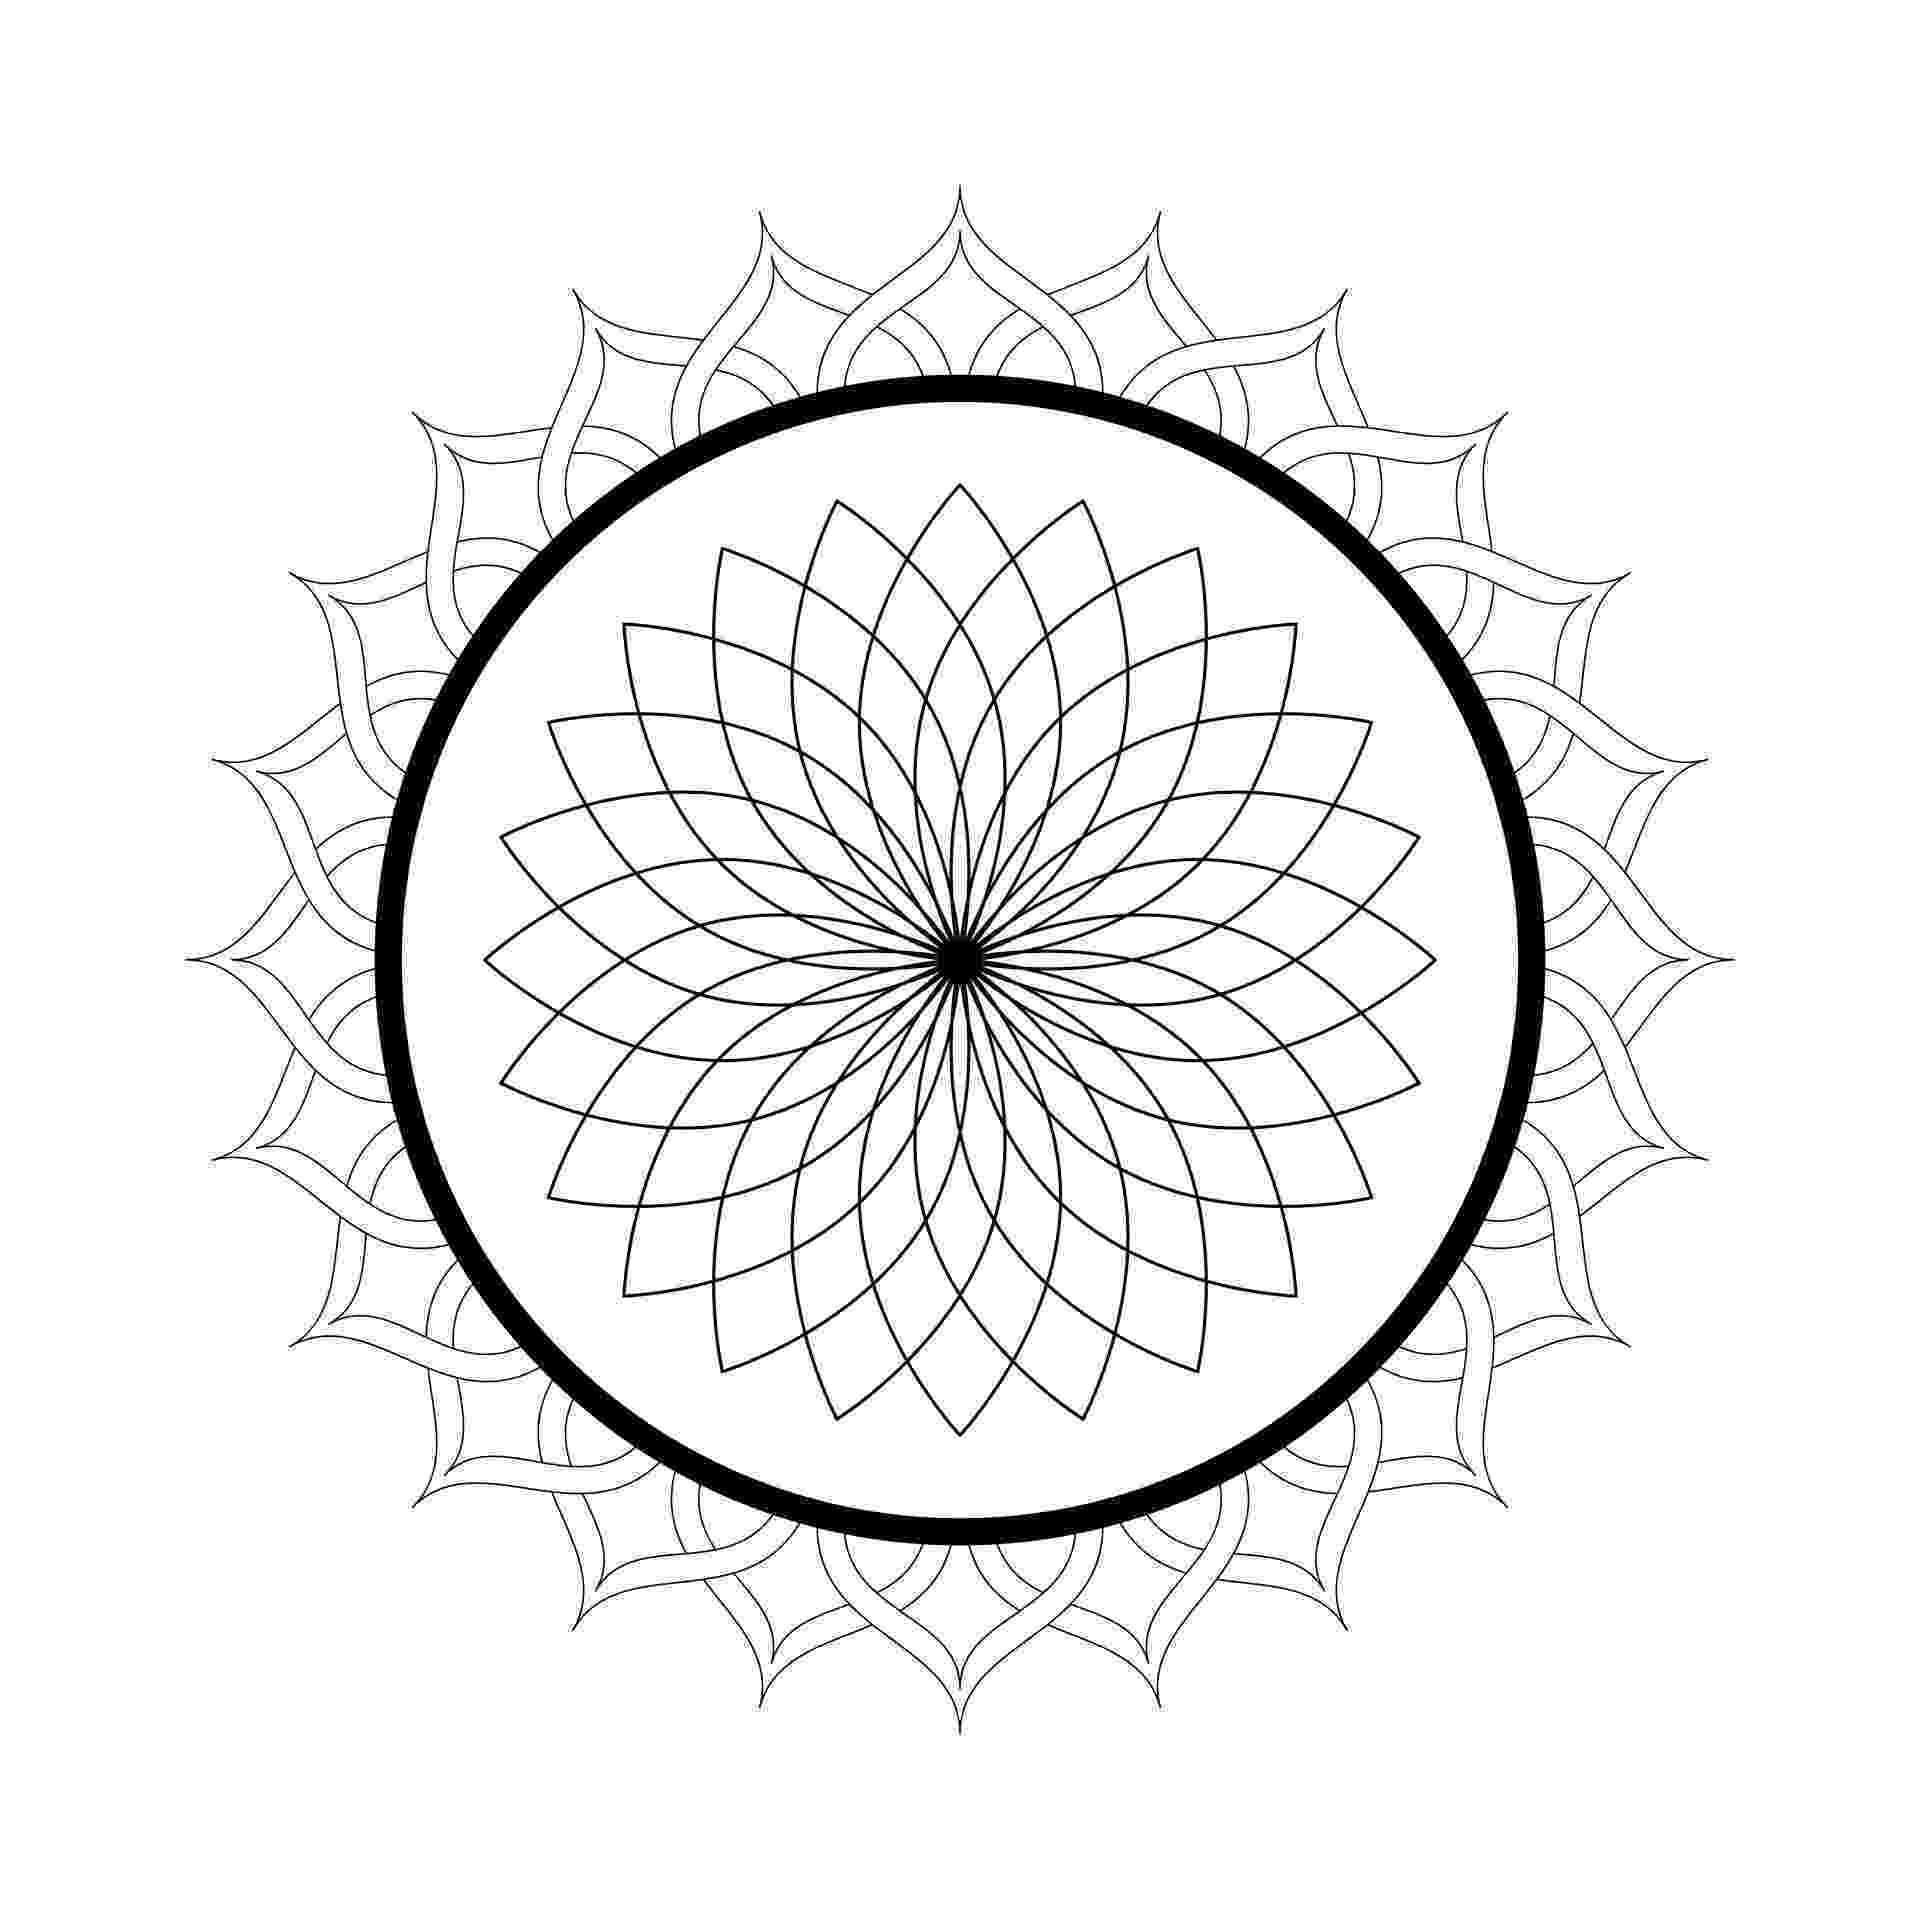 mandala coloring pages free printable adults how to make your own mandala coloring pages for free printable adults coloring free mandala pages